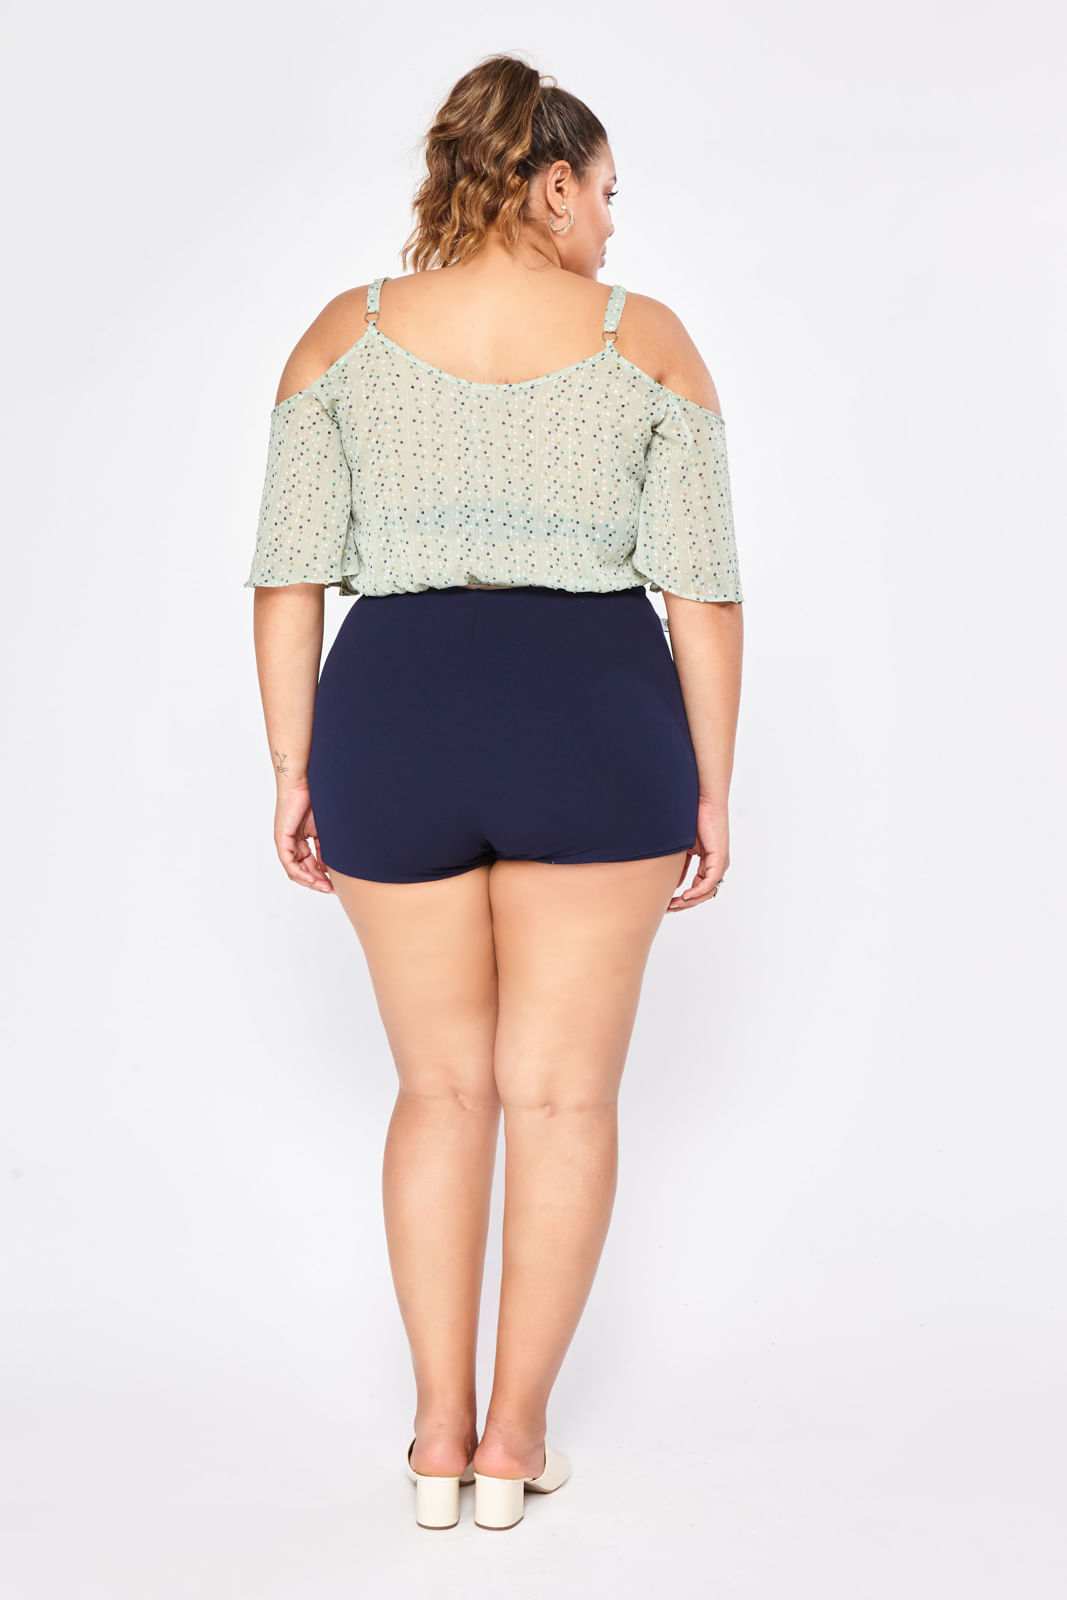 KPS007B-HP-_Shorts_Plus_Size_Hot_Pants_Azul_Marinho_9